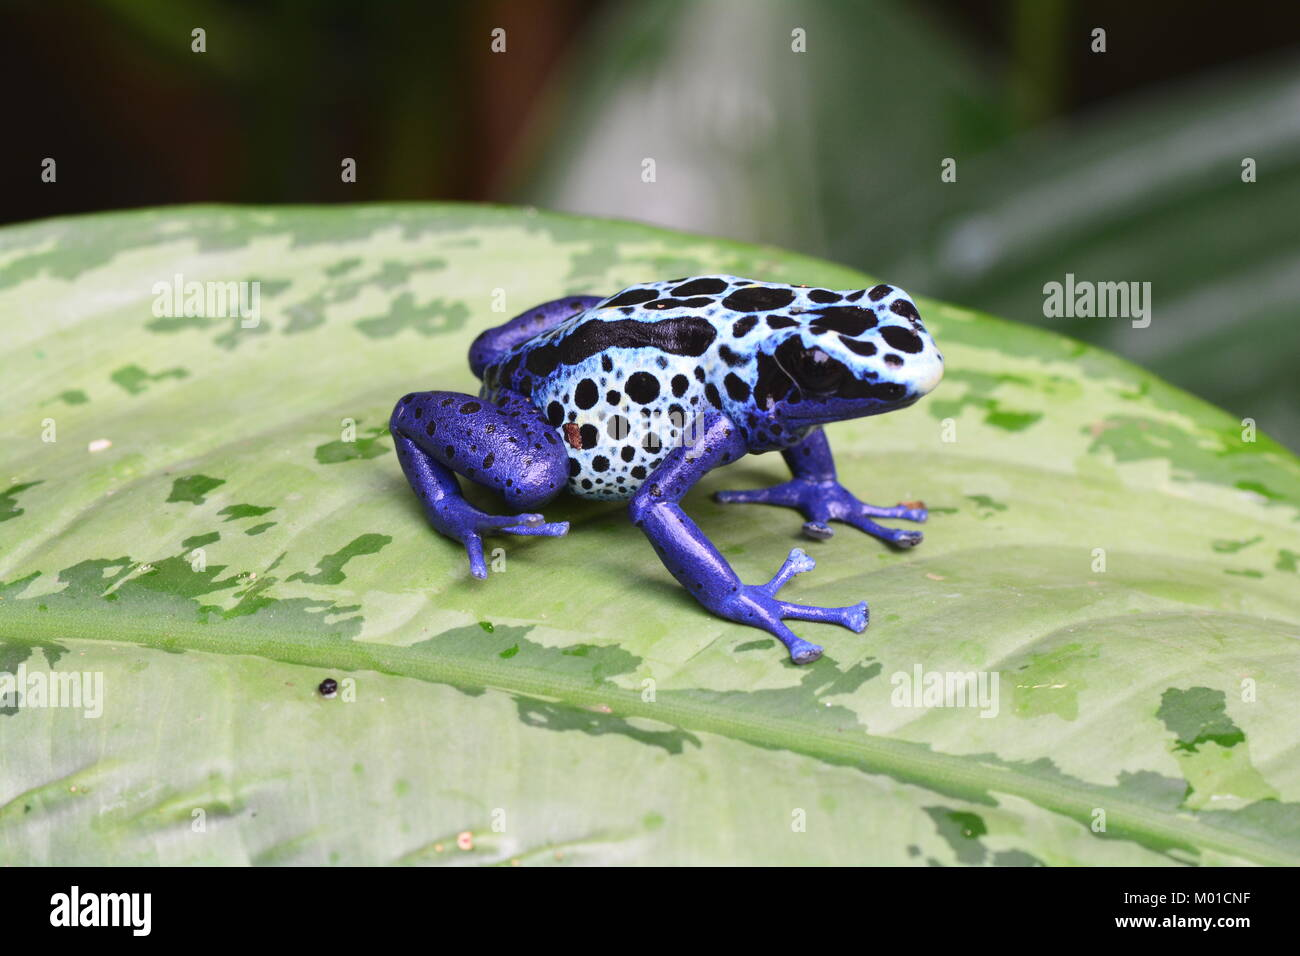 A pretty cobalt blue colored poison dart frog sits on a plant leaf in the gardens. Stock Photo